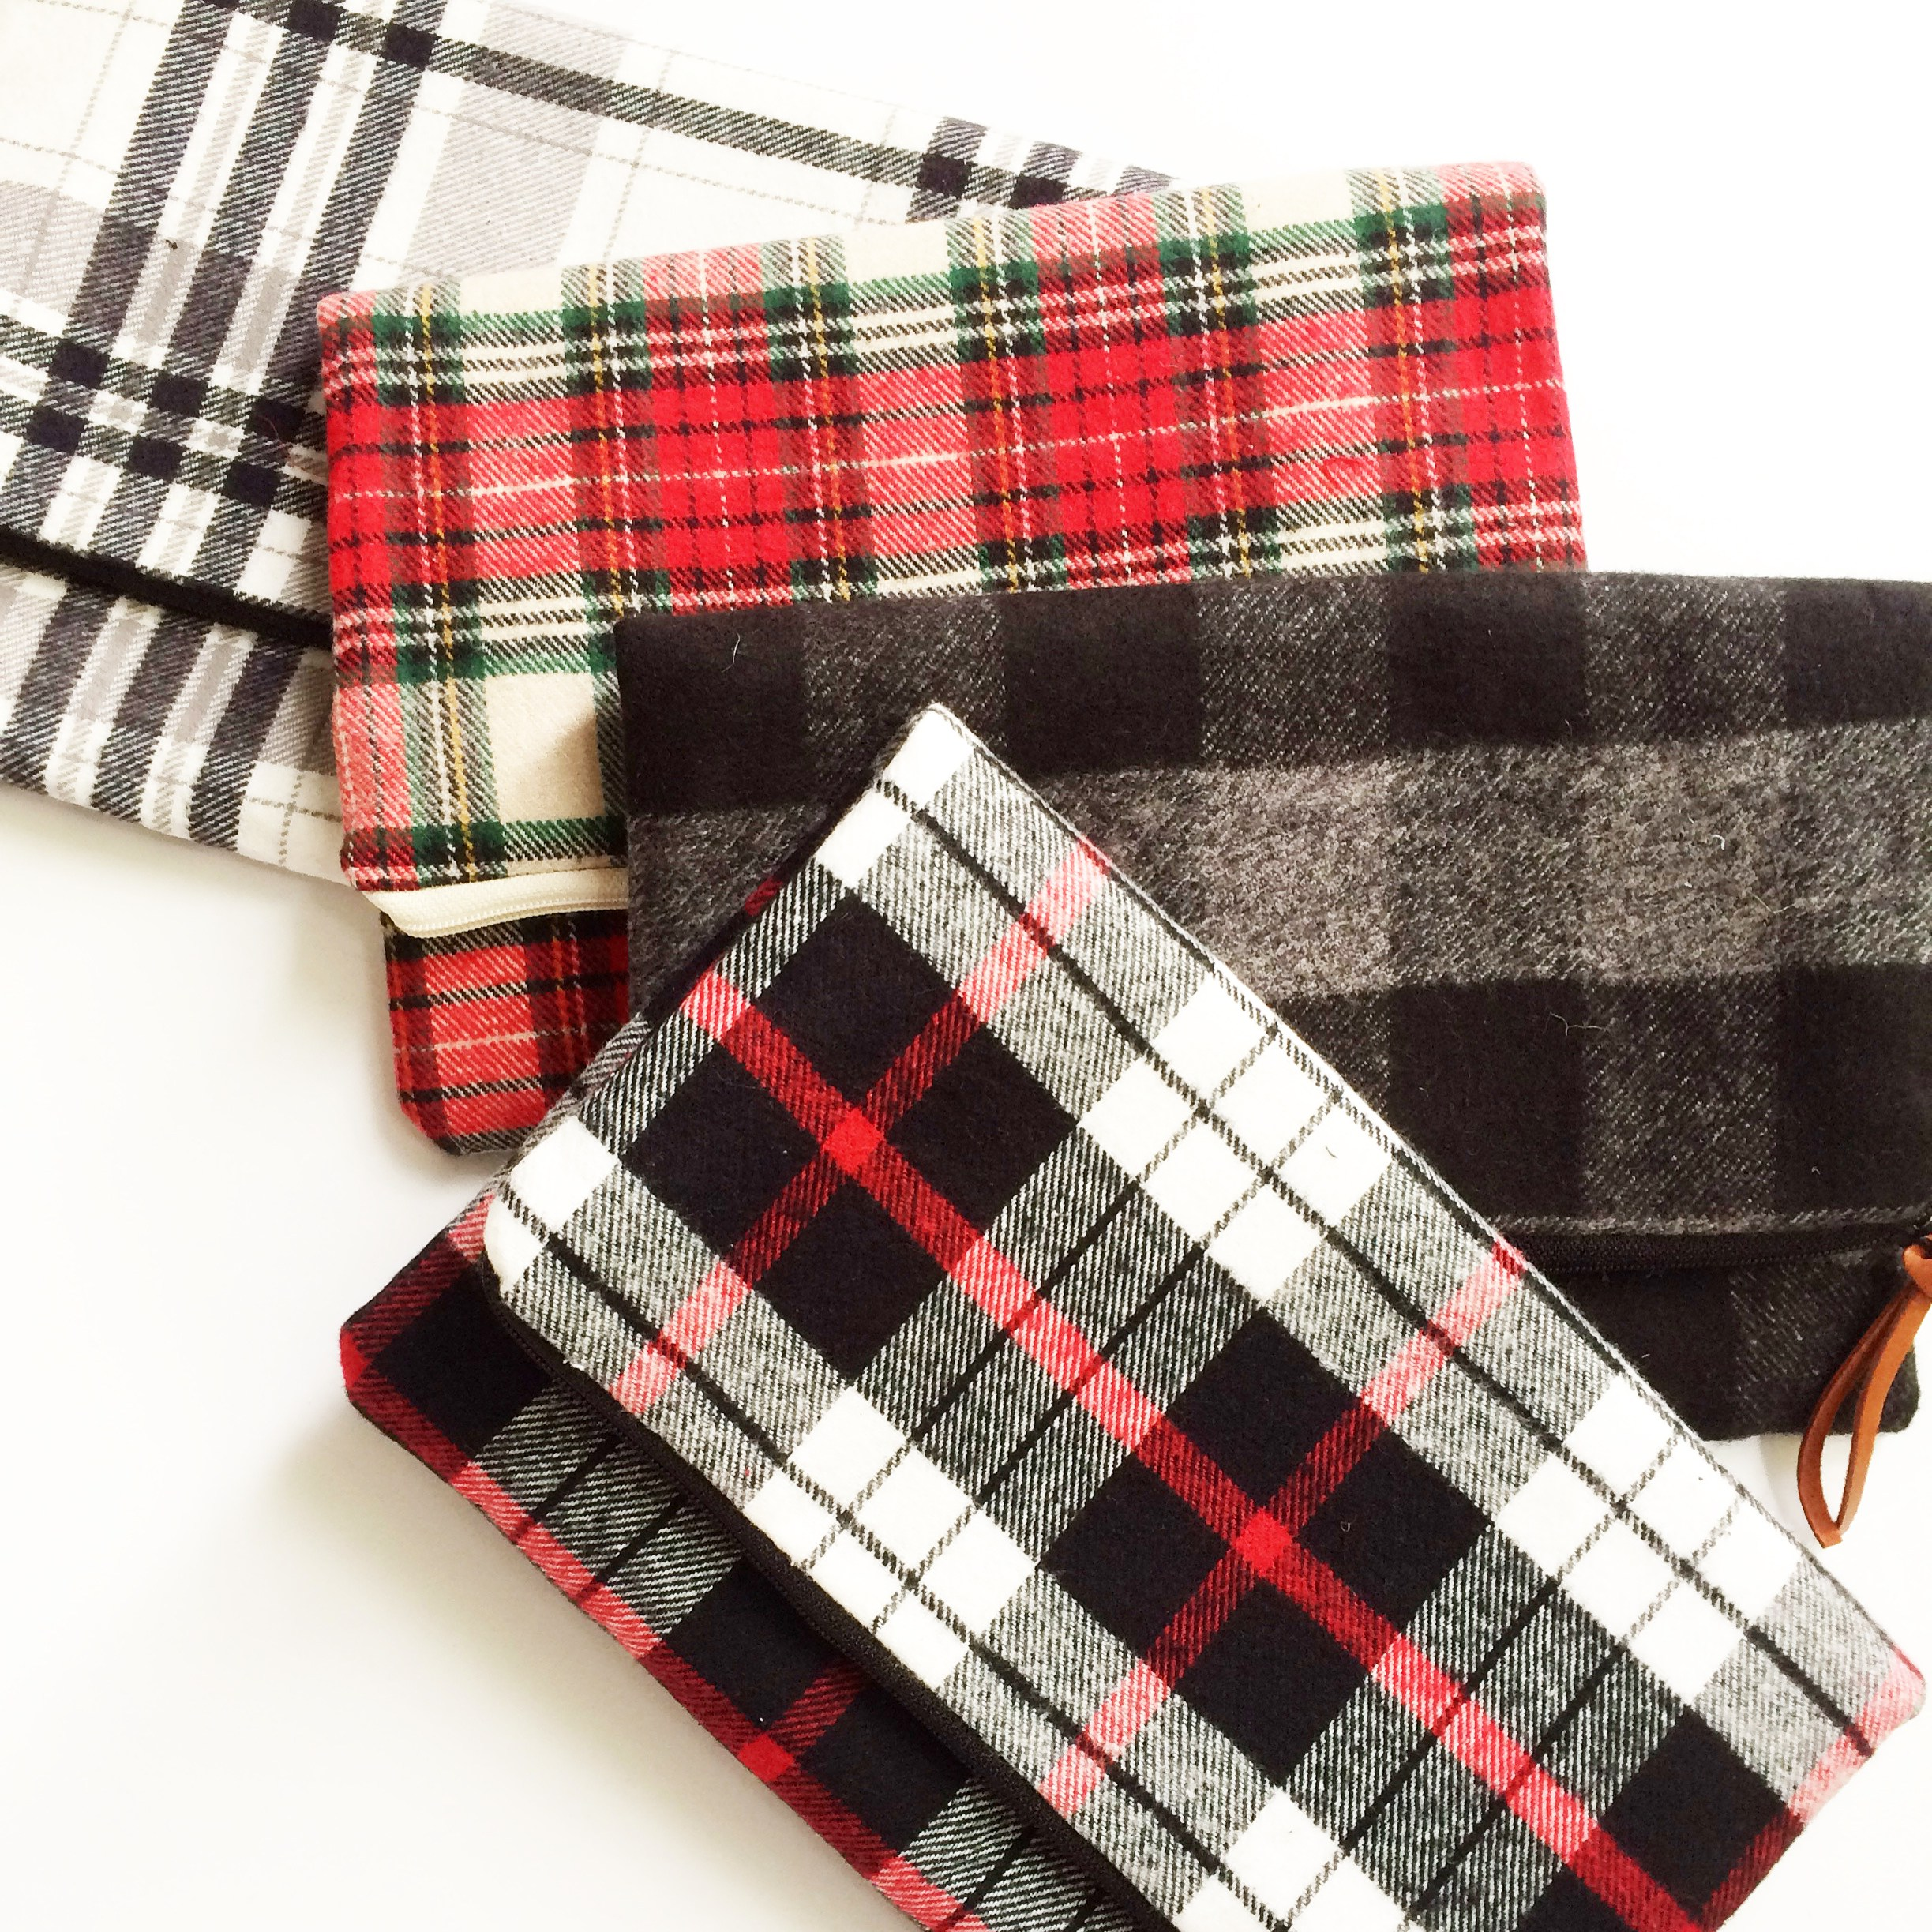 Flannel + Function, yes please! - We met this small business owner at the Vintage & Made Market this past September. She is just the sweetest and has a great eye for style.At A Stylish Design, you can find handmade one of a kind pieces like kiminos, blanket wraps and clutches! We especially love her flannel clutches. They would make such a great gift!Go check it out!